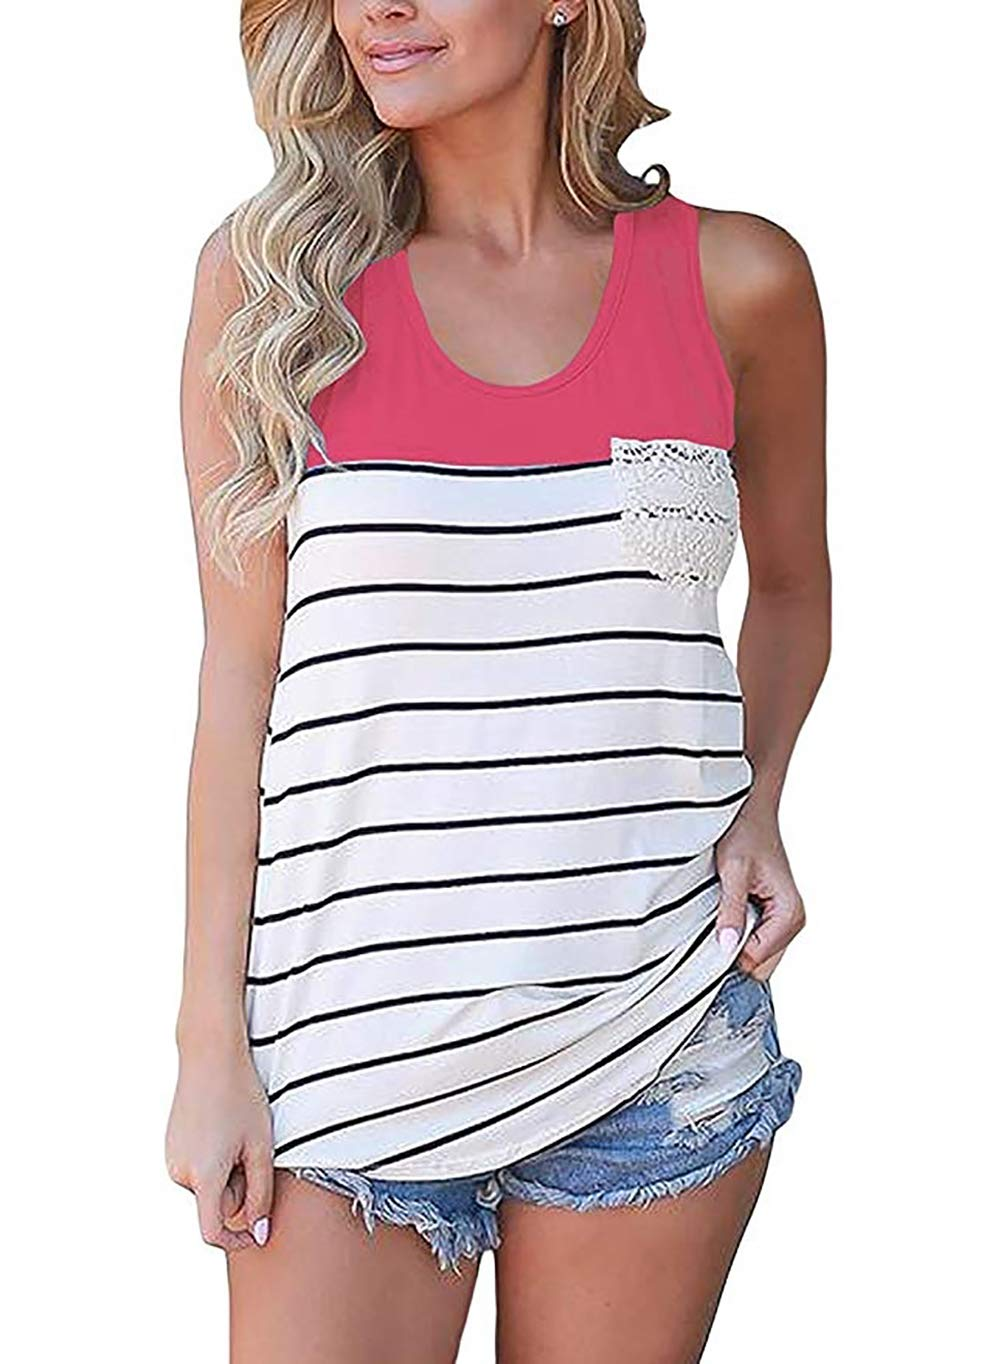 Fronage Women's Cotton Racerback Tank Tops Sleeveless Loose Fit T-Shirts (L, Rose Red)